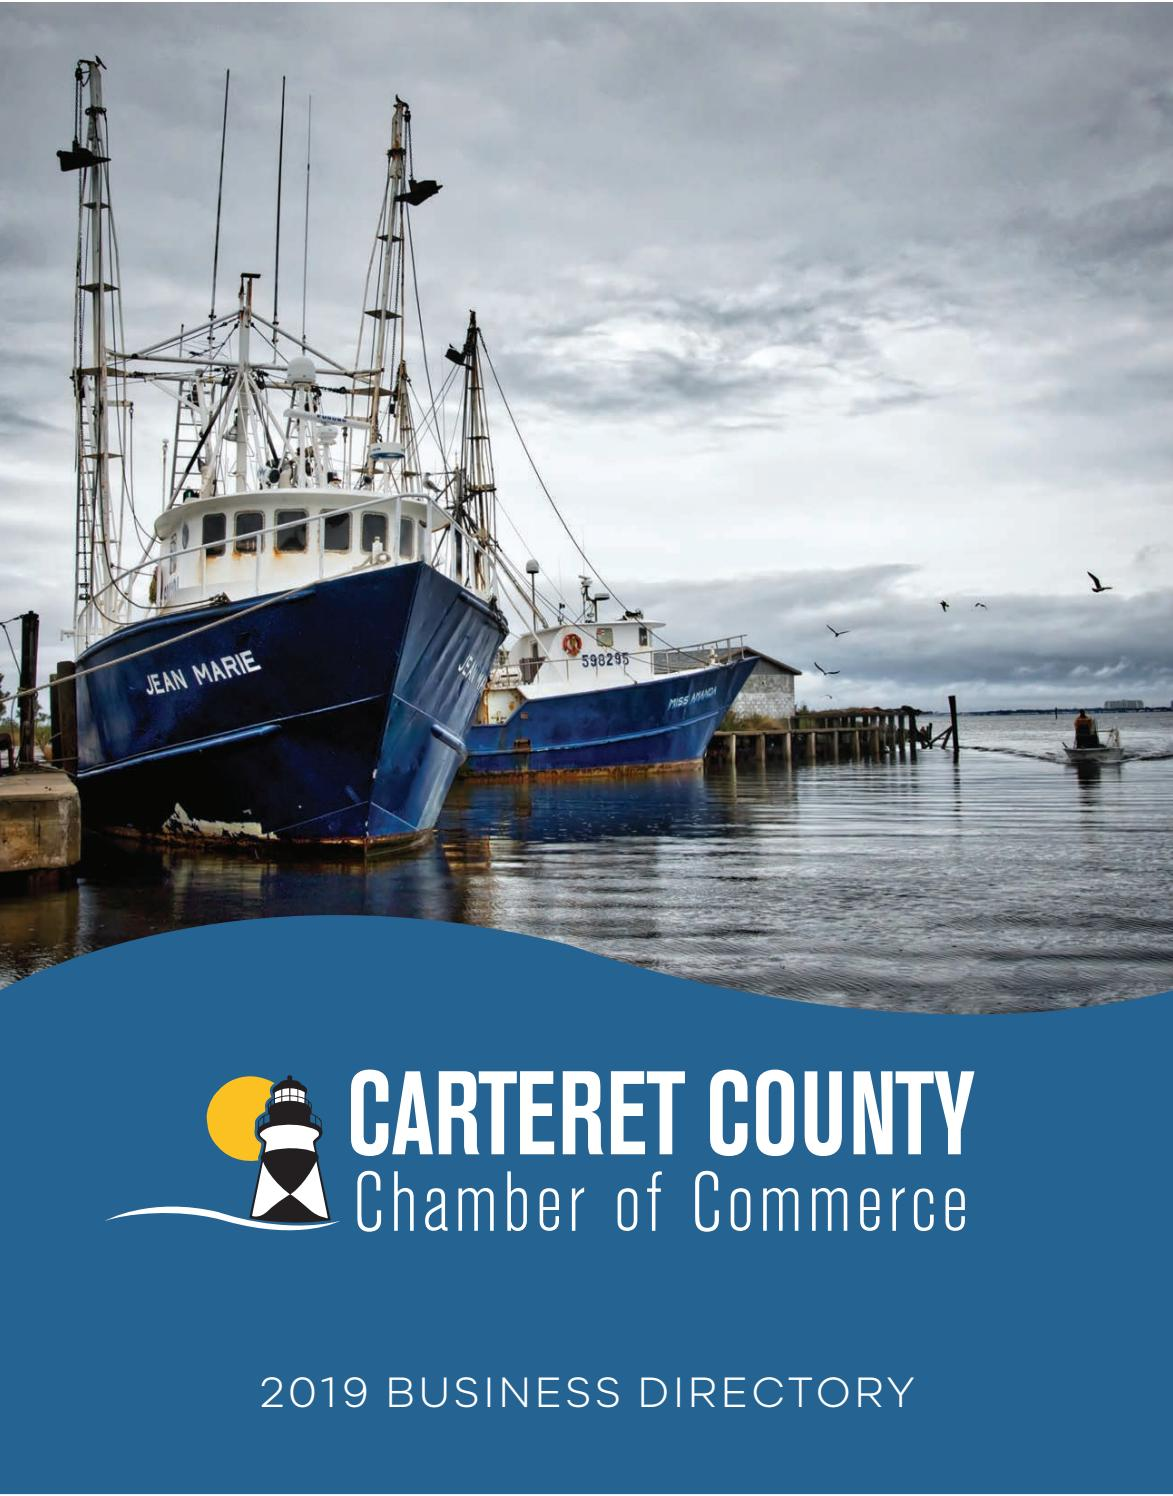 Carteret County Chamber of Commerce - 2019 by NCCOAST - issuu